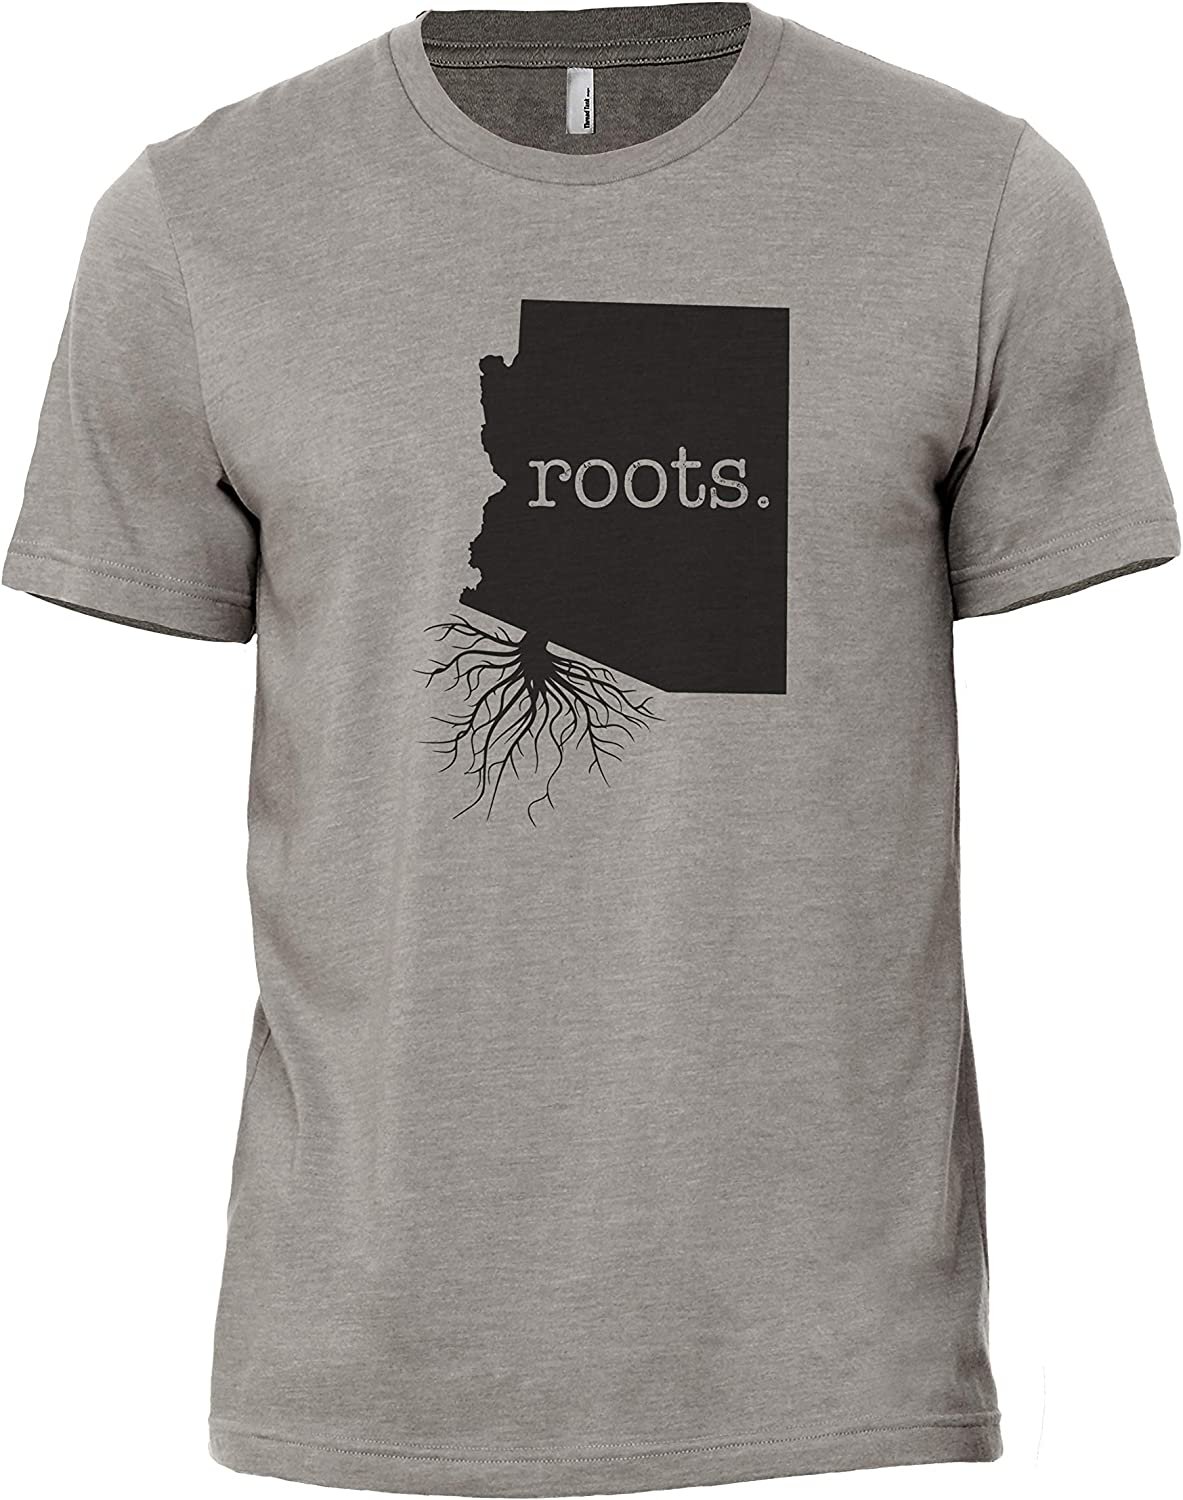 Home Roots State Arizona AZ Men's Modern Fit T-Shirt Printed Graphic Tee